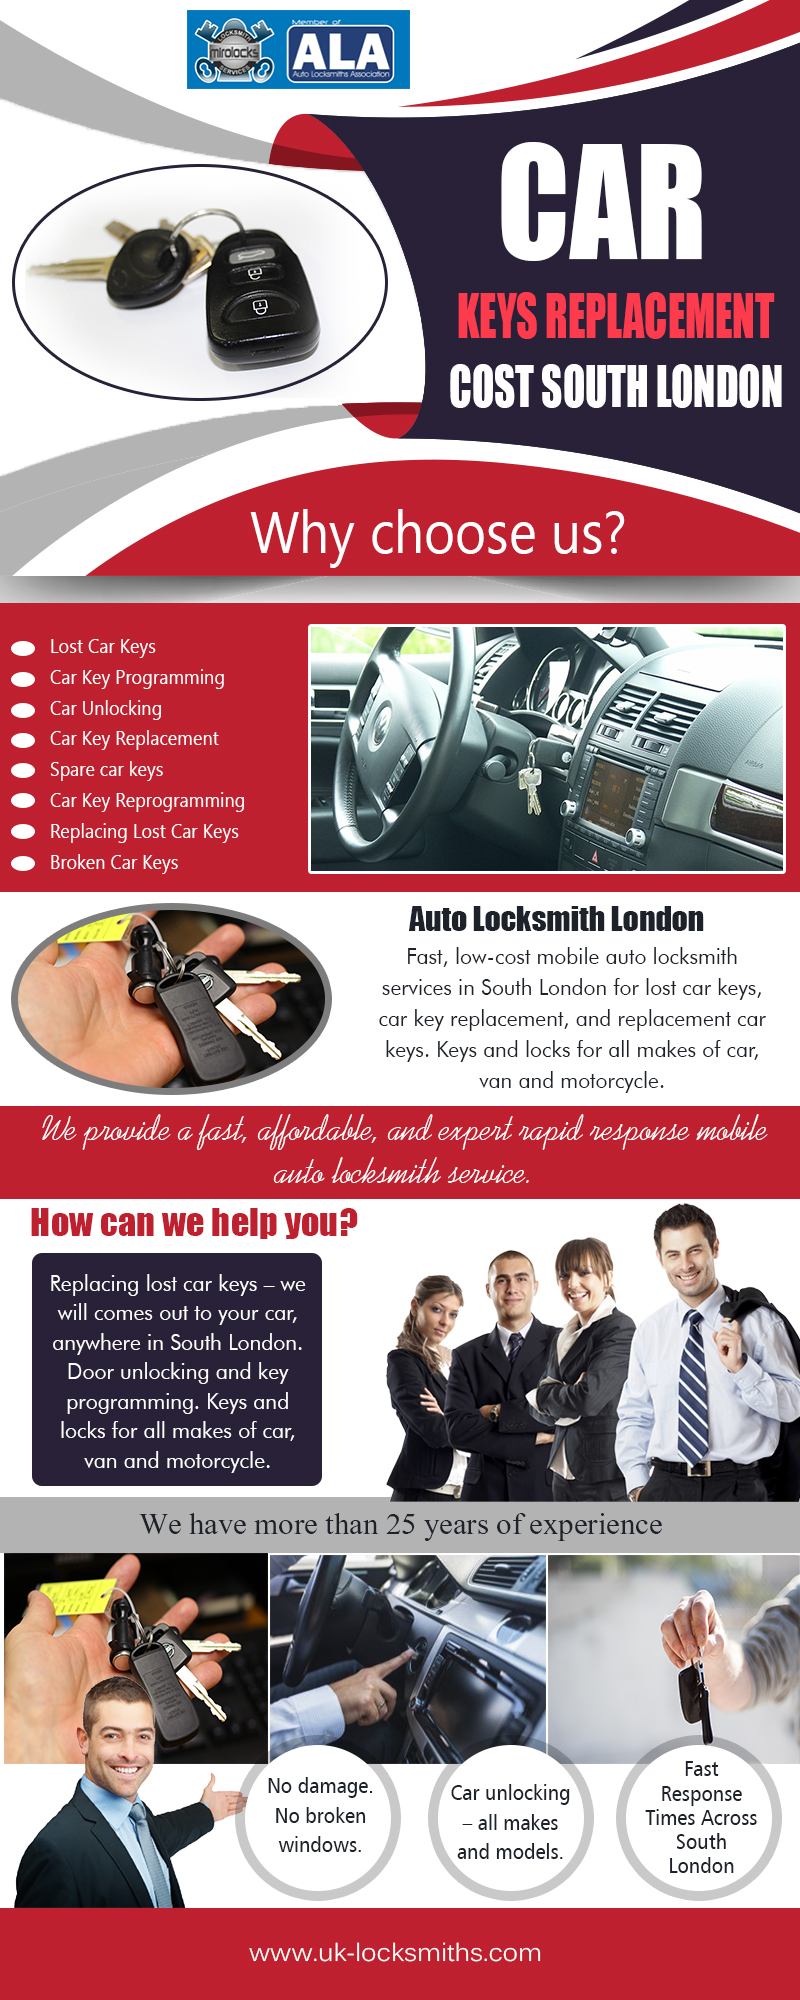 Car Keys Replacement Cost South London | Call – 07462 327 027 | uk-locksmiths.com